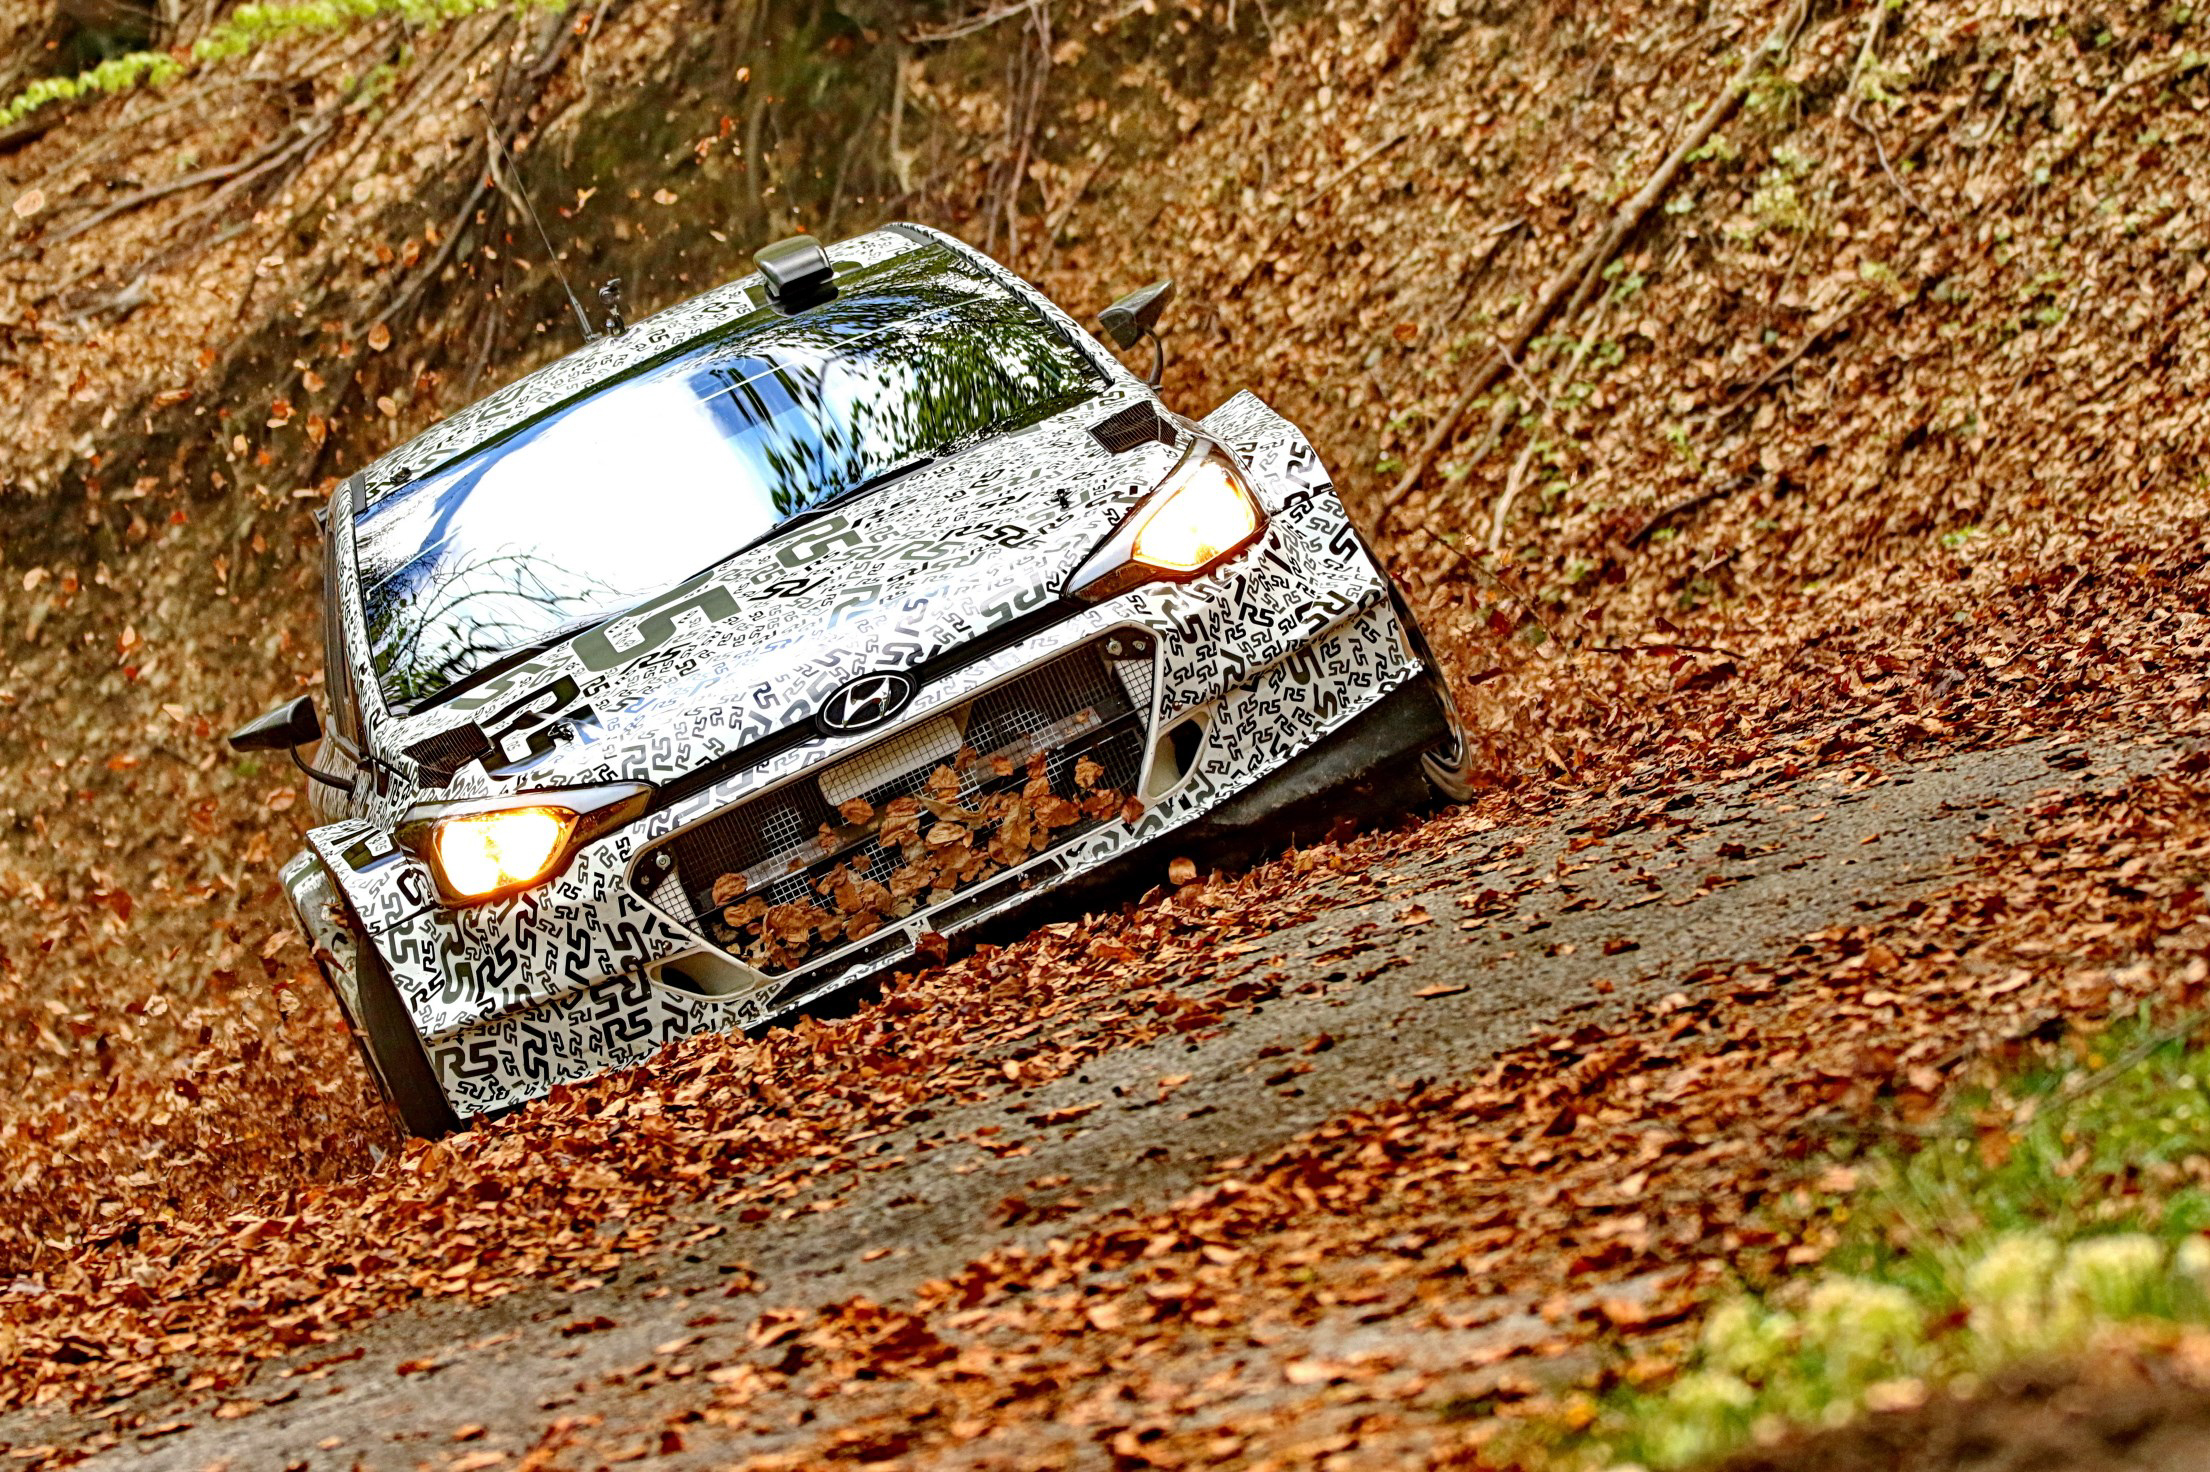 Hyundai Motorsport's New Generation i20 R5 takes on further tarmac testing in Italy